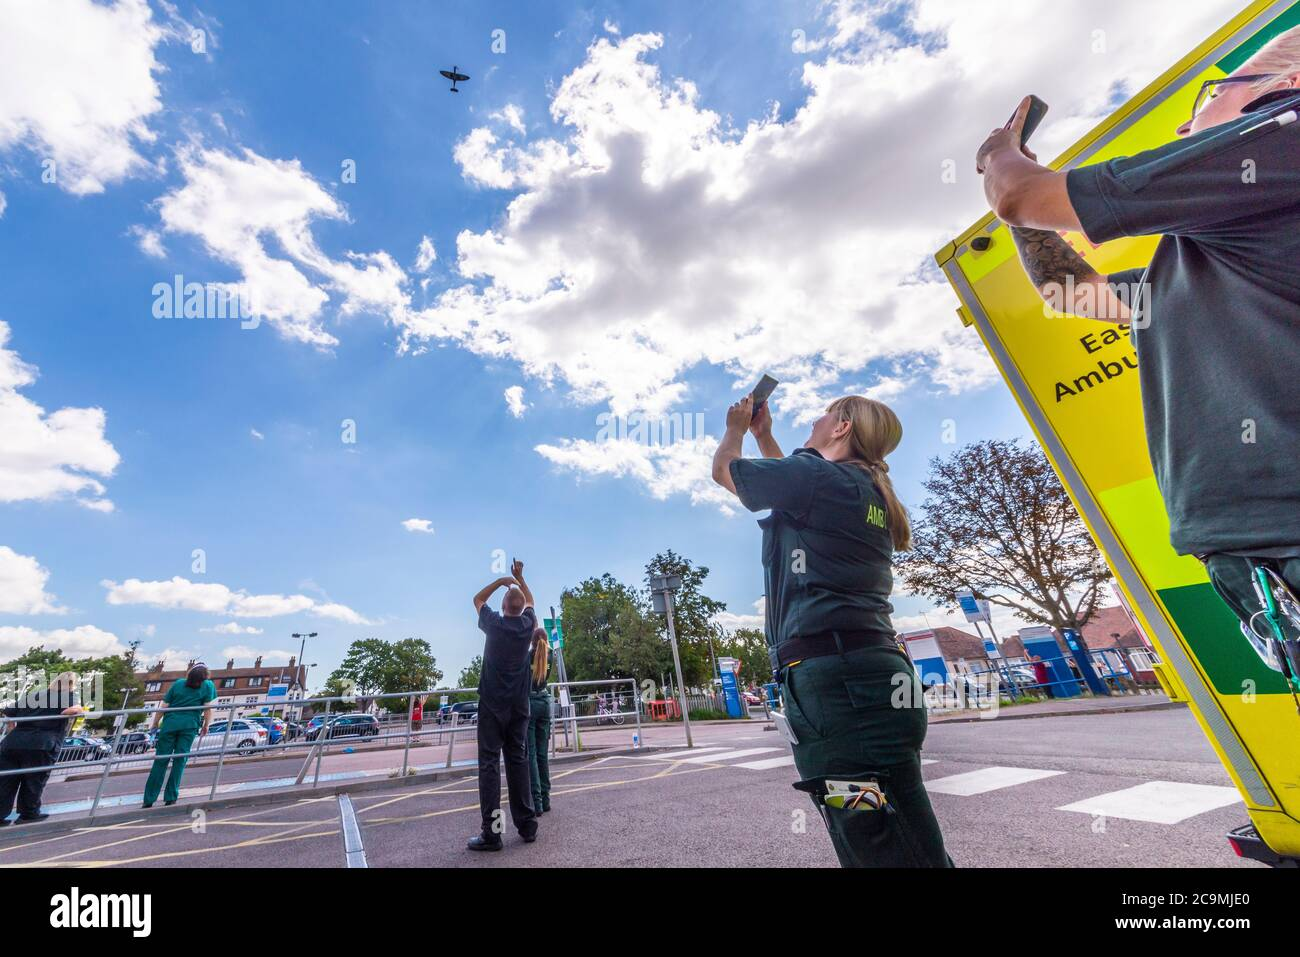 southend-university-hospital-southend-on-sea-essex-uk-1st-aug-2020-the-aircraft-restoration-company-based-at-duxford-airfield-in-cambridgeshire-have-painted-thank-u-nhs-on-the-underside-of-their-blue-second-world-war-spitfire-in-honour-of-the-work-during-the-covid-19-coronavirus-pandemic-by-the-national-health-service-today-the-spitfire-has-flown-from-duxford-over-the-hospital-at-southend-before-heading-for-hospitals-in-kent-some-health-care-staff-came-out-to-watch-a-number-of-staff-at-southend-have-been-lost-to-the-virus-ambulance-crews-photographing-and-videoing-with-phones-2C9MJE0.jpg